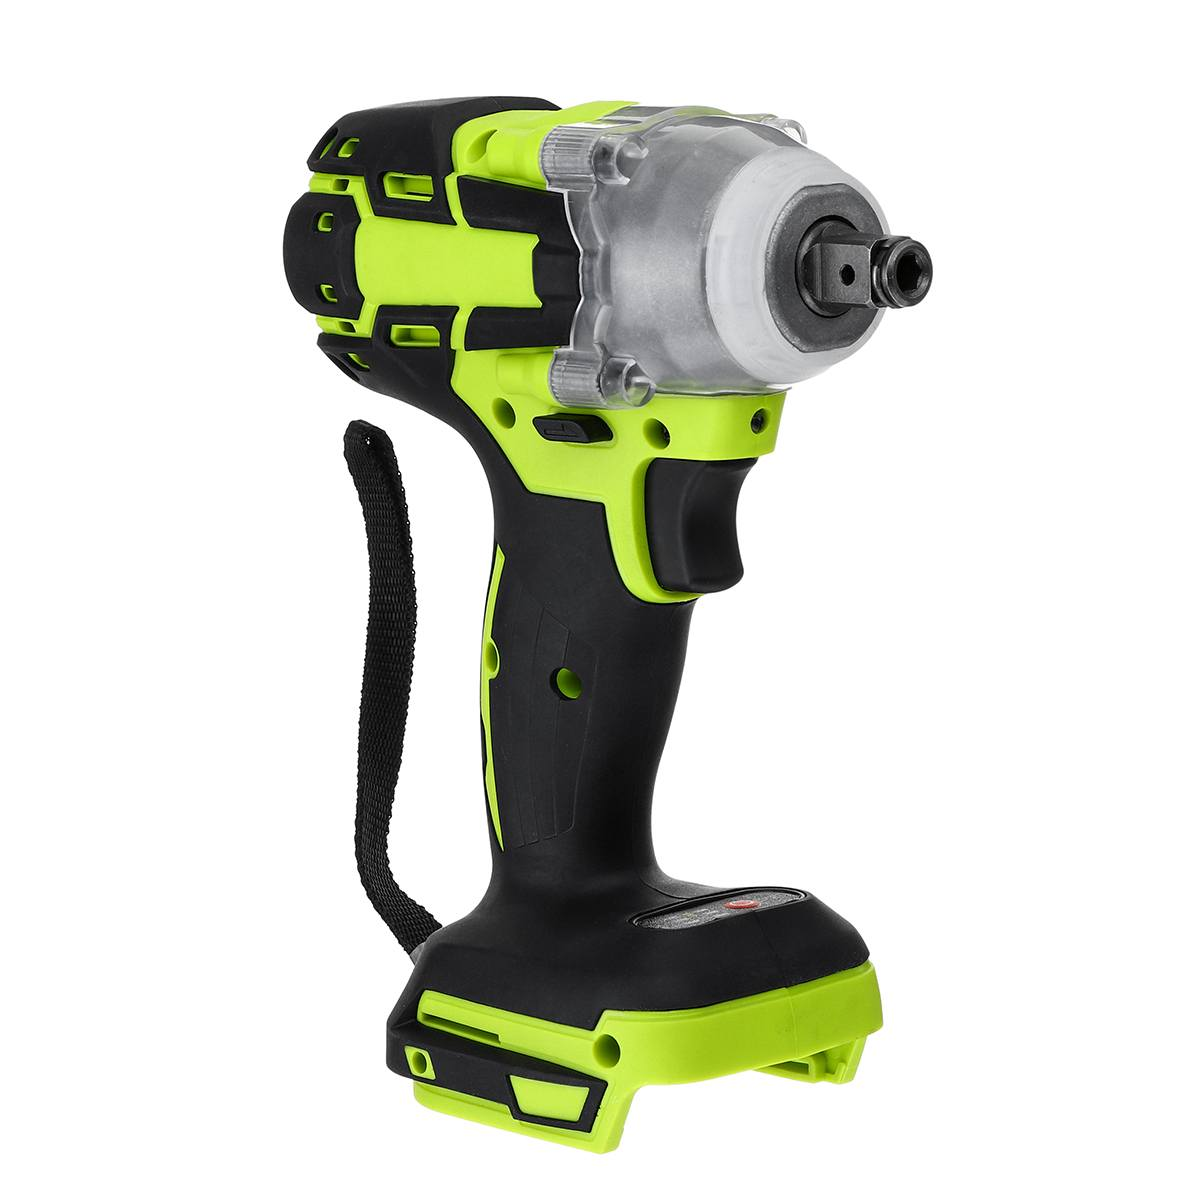 Tools : 18V 588N M Electric Rechargeable Brushless Impact Wrench Cordless 1 2 Socket Wrench Power Tool Wireless Electric Impact Wrenches